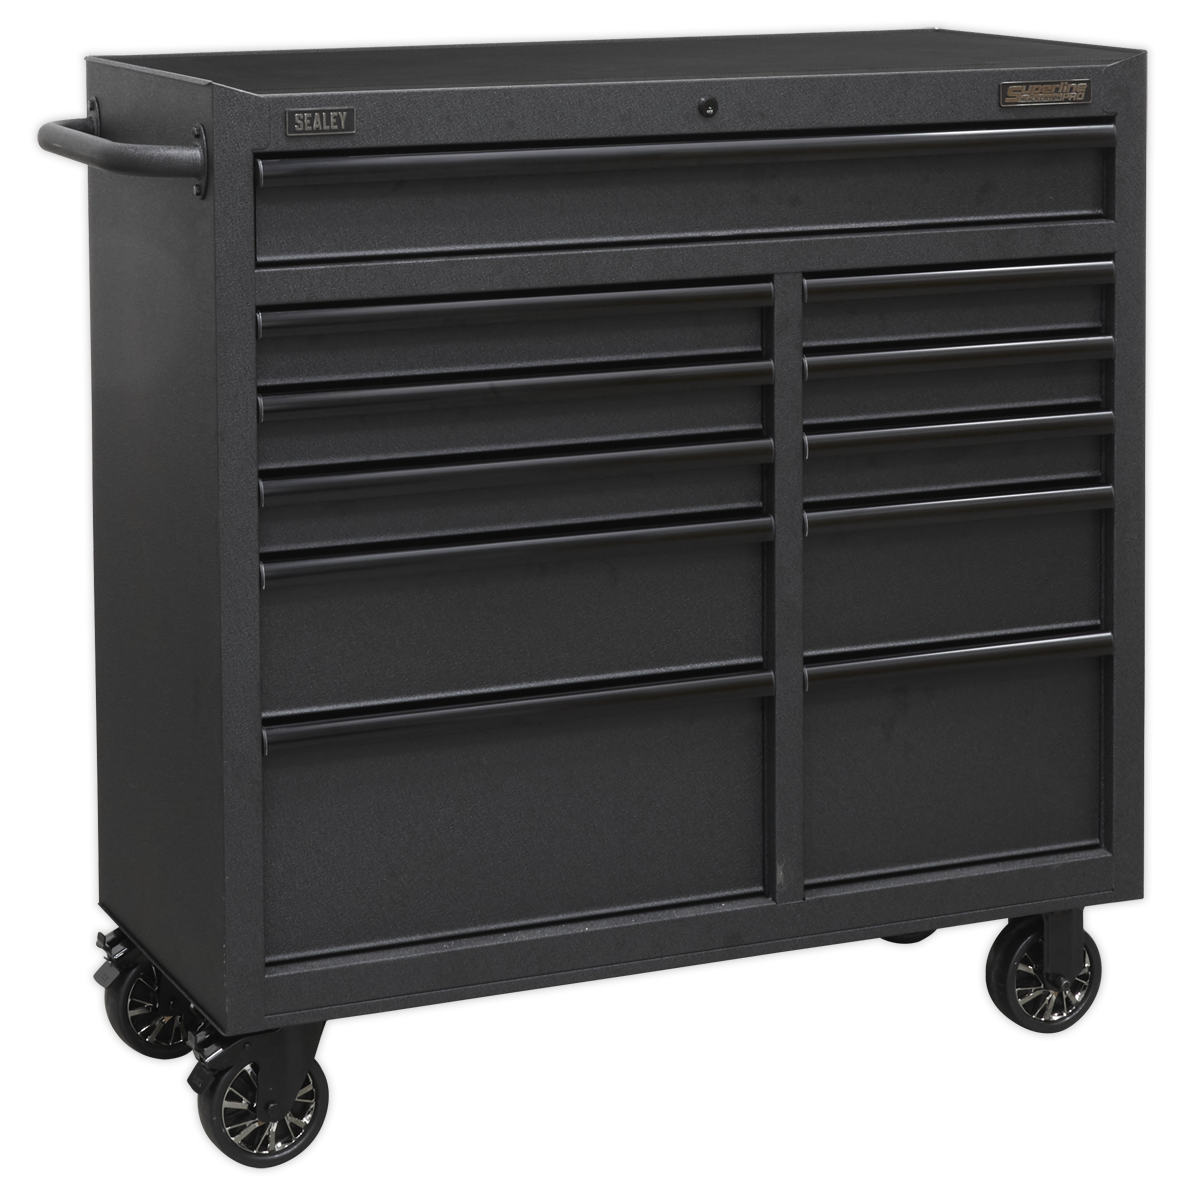 Sealey Rollcab 11 Drawer 1040mm with Soft Close Drawers AP4111BE | All heavy-duty steel construction and manufactured with steel inner walls for extra strength and durability. | toolforce.ie